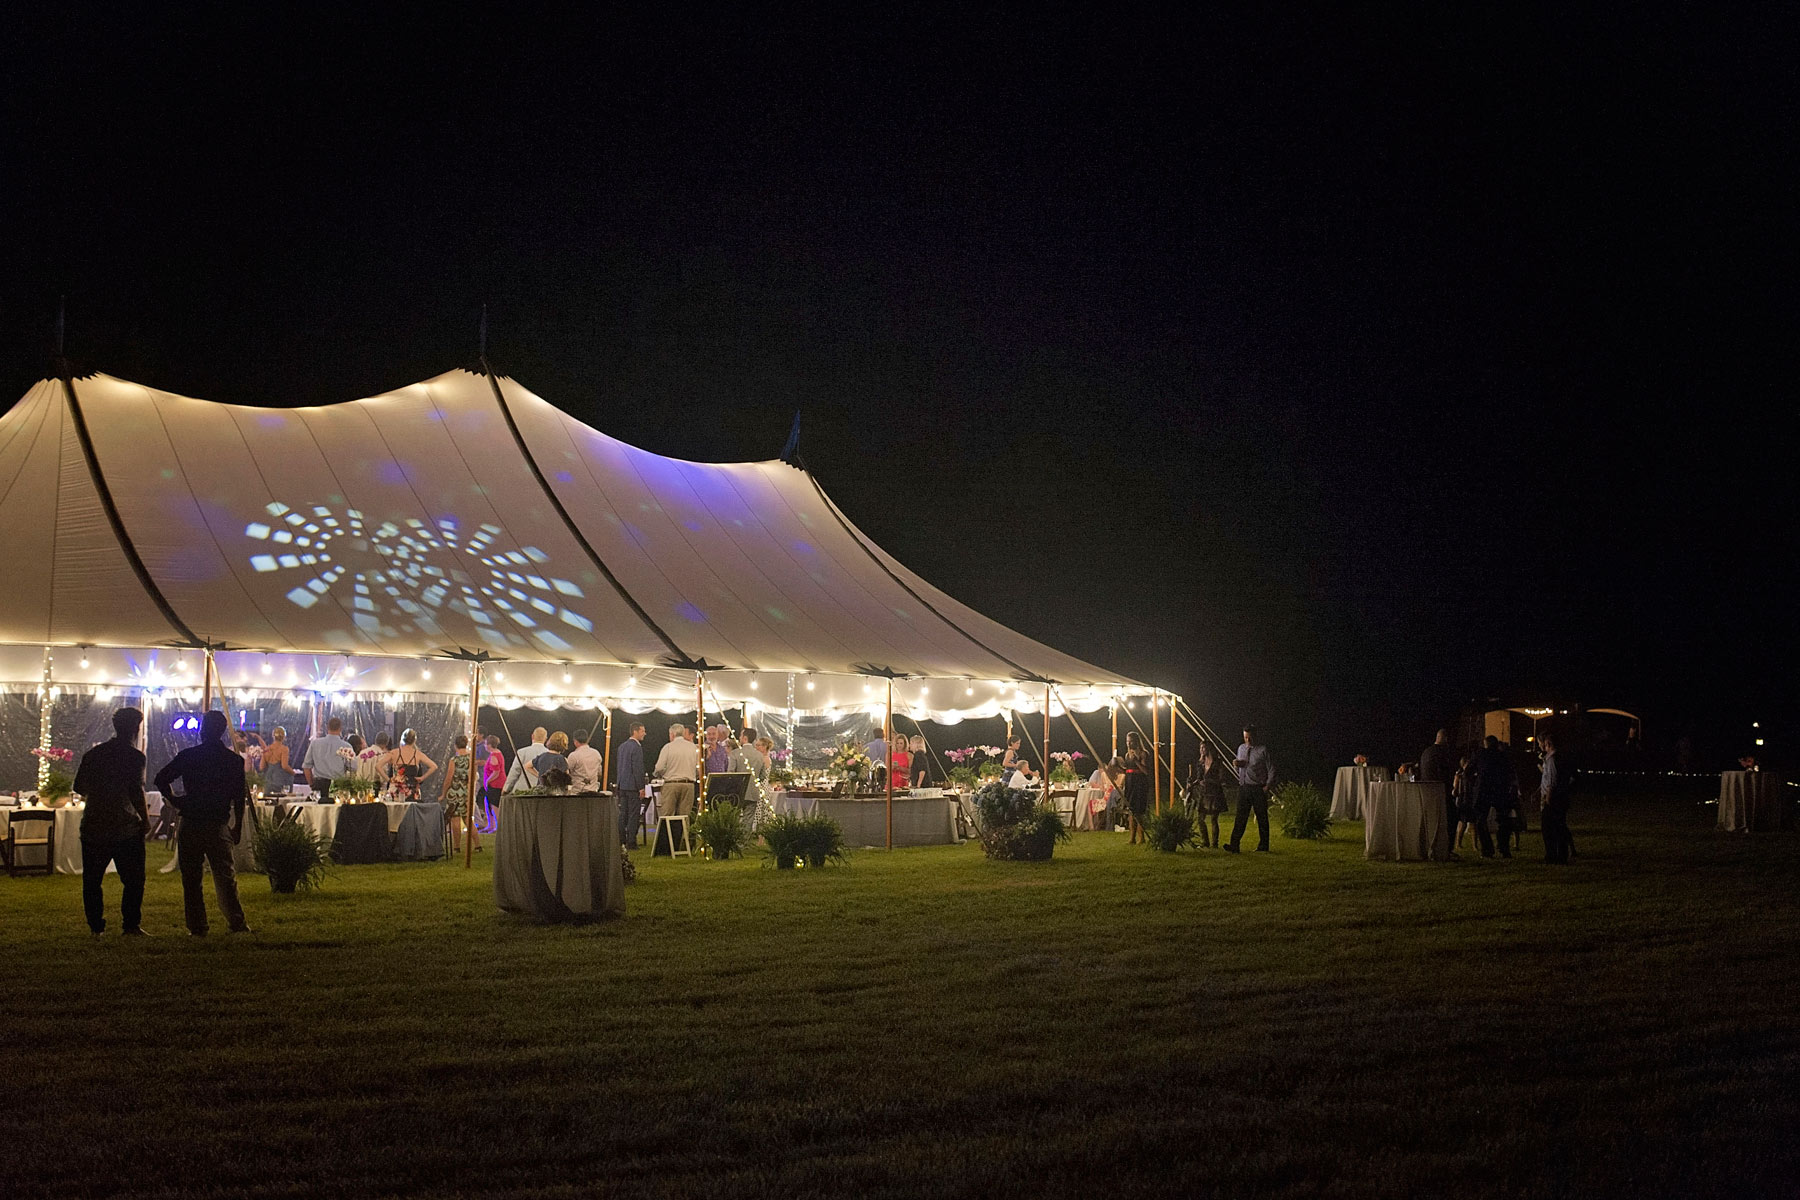 Sailcloth tent lit at night against a dark sky